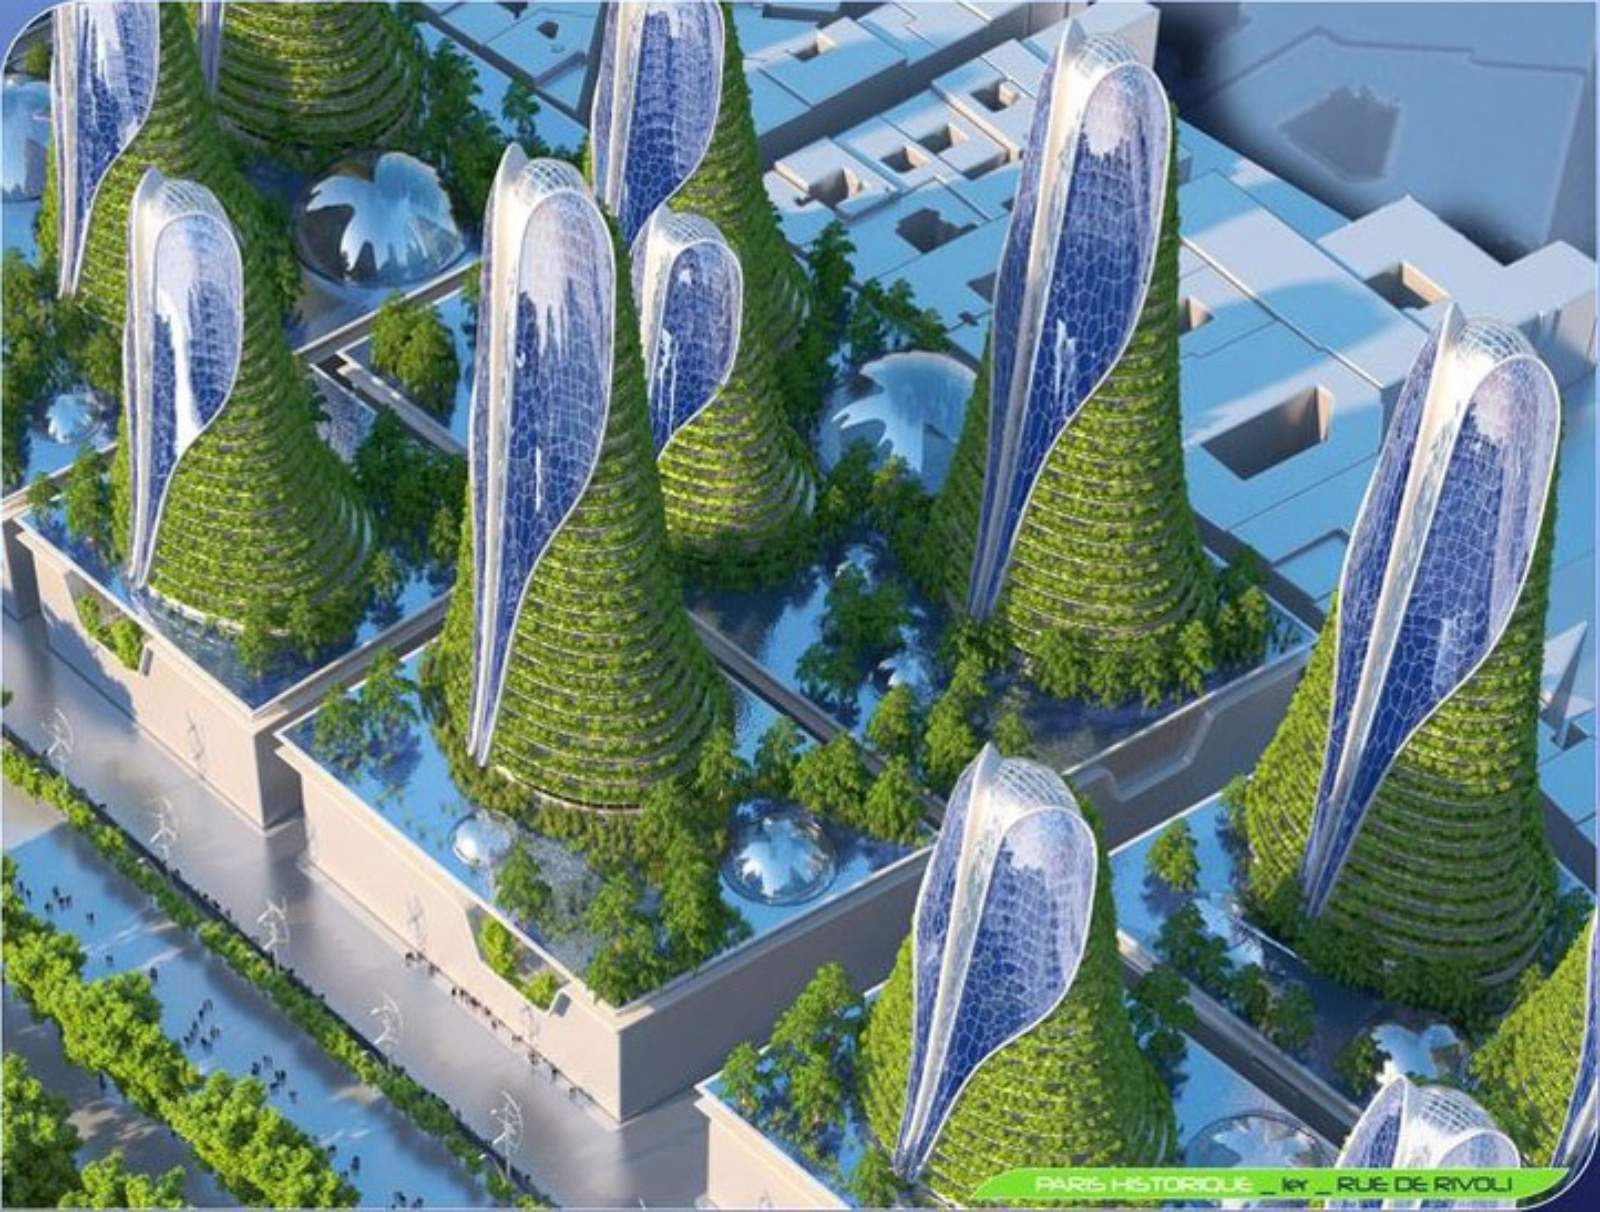 Paris smart city 2050 by vincent callebaut 04 for Architecture 2050